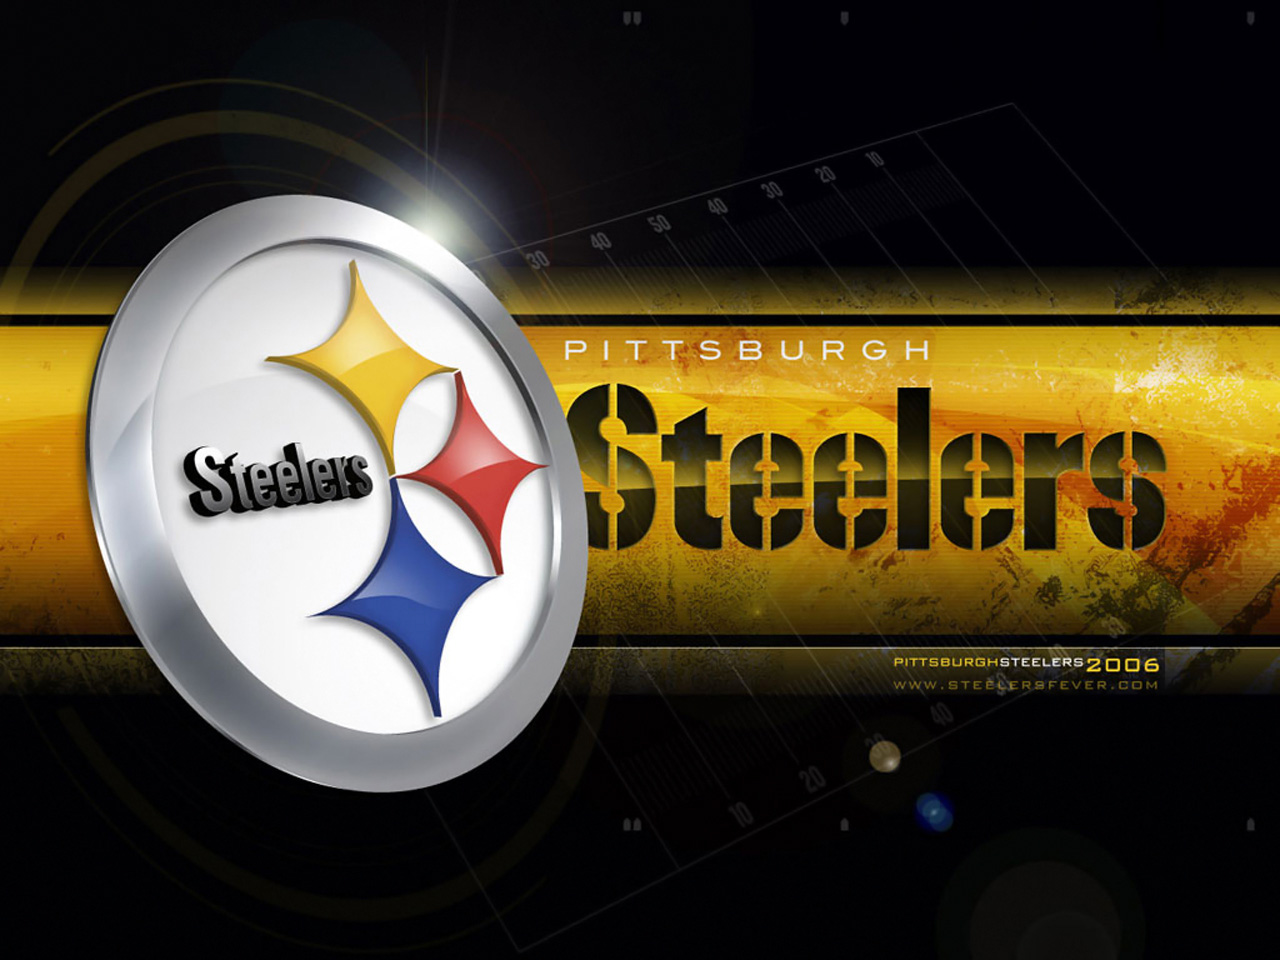 Awesome Pittsburgh Steelers wallpaper wallpaper Pittsburgh Steelers 1280x960